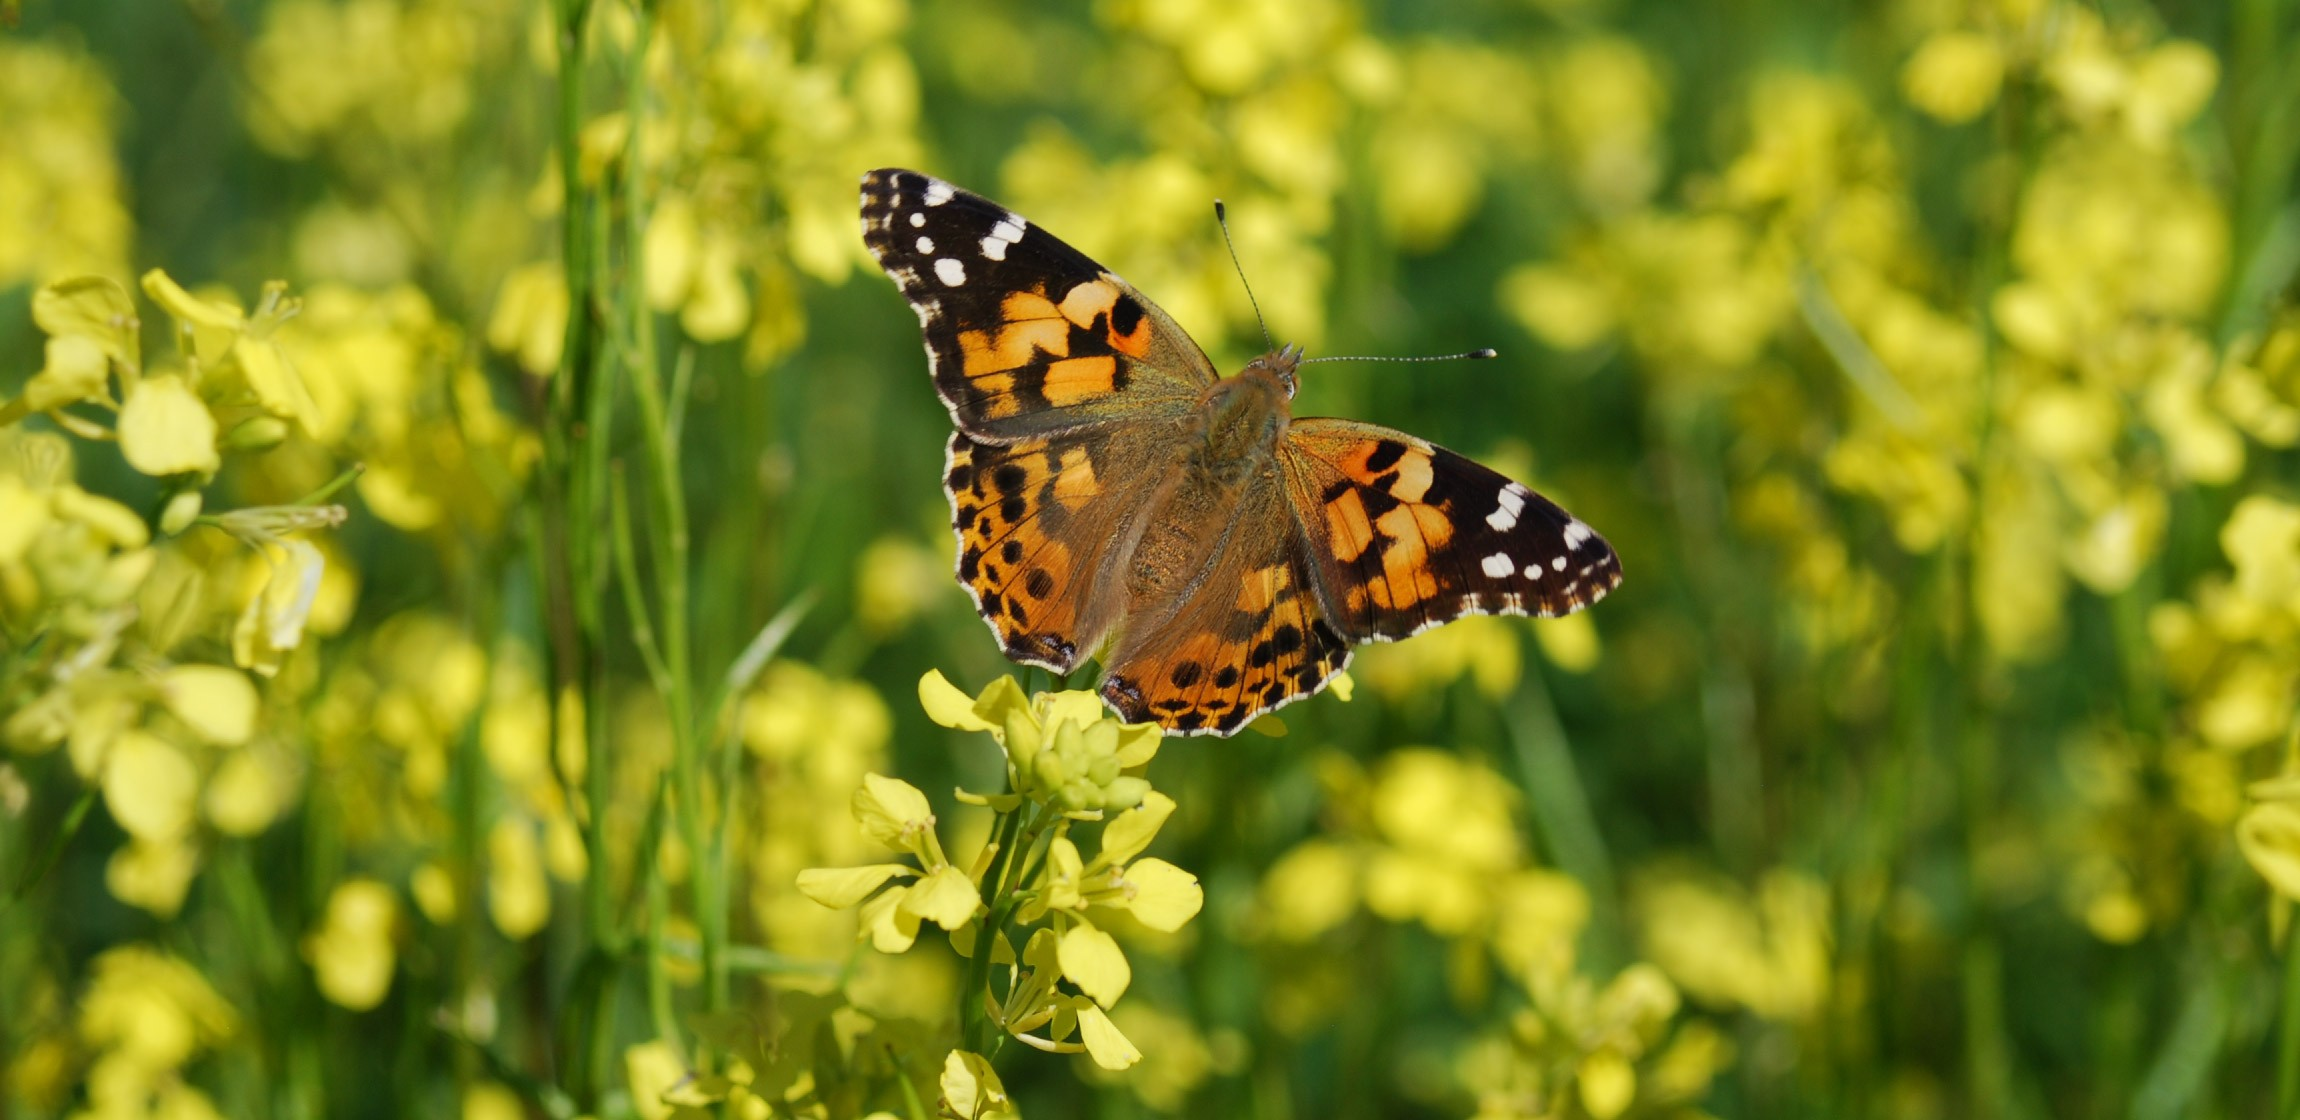 A butterfly on a canola flower